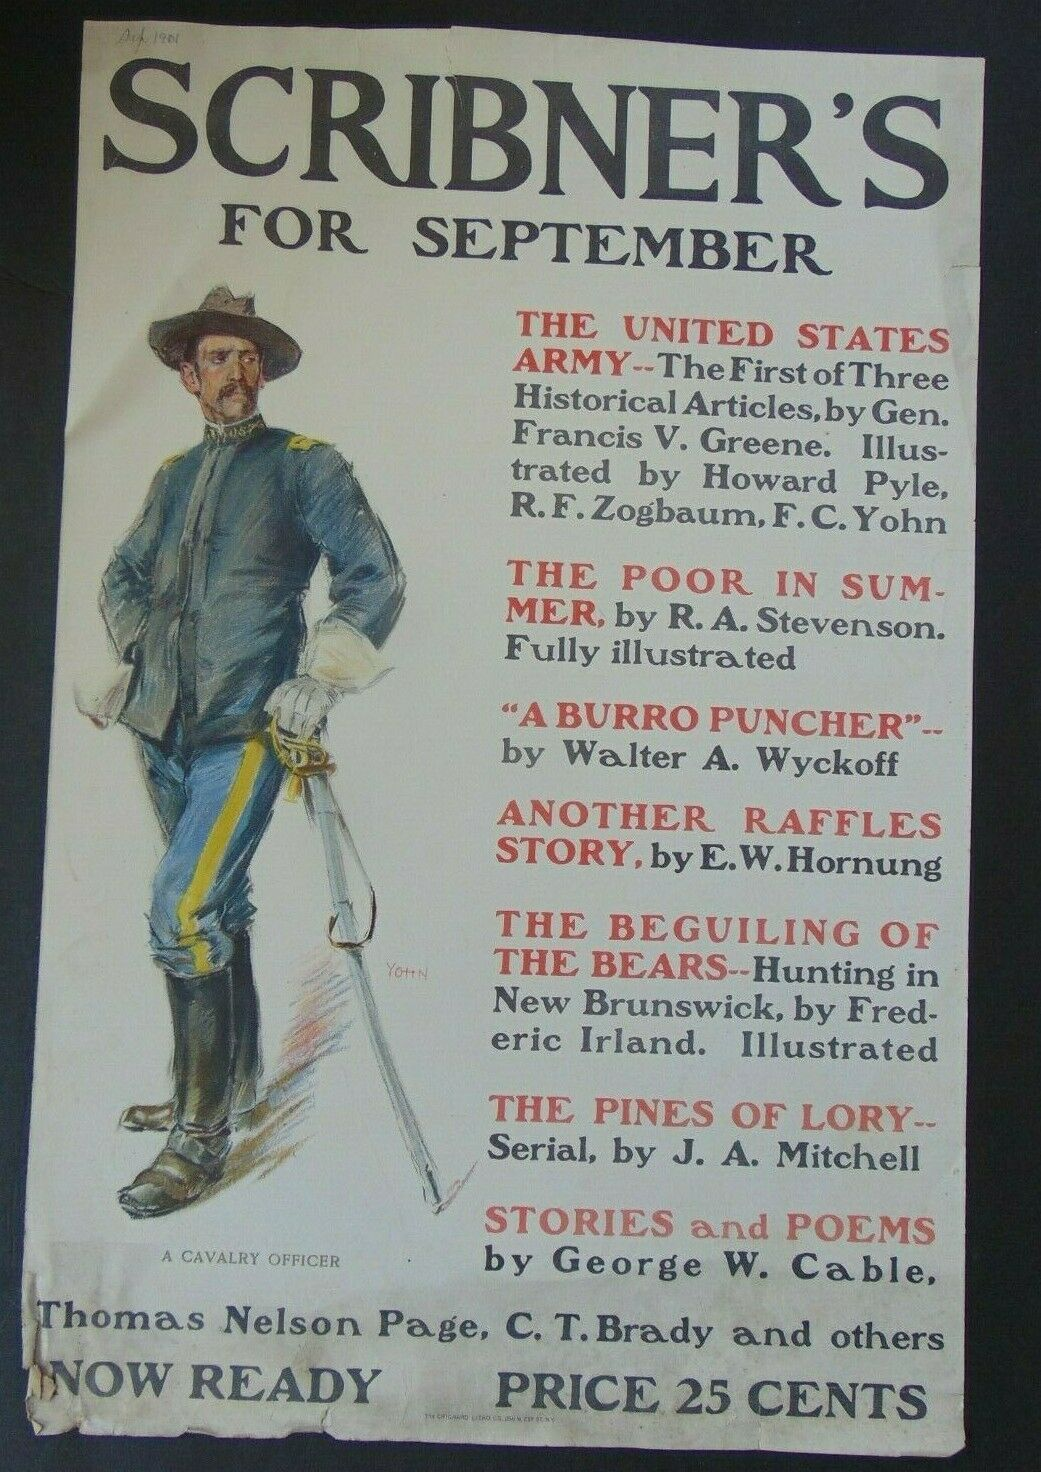 C.1901 - CAVALRY OFFICER - SCRIBNERS FOR SEPTEMBER - LARGE POSTER - $11.50